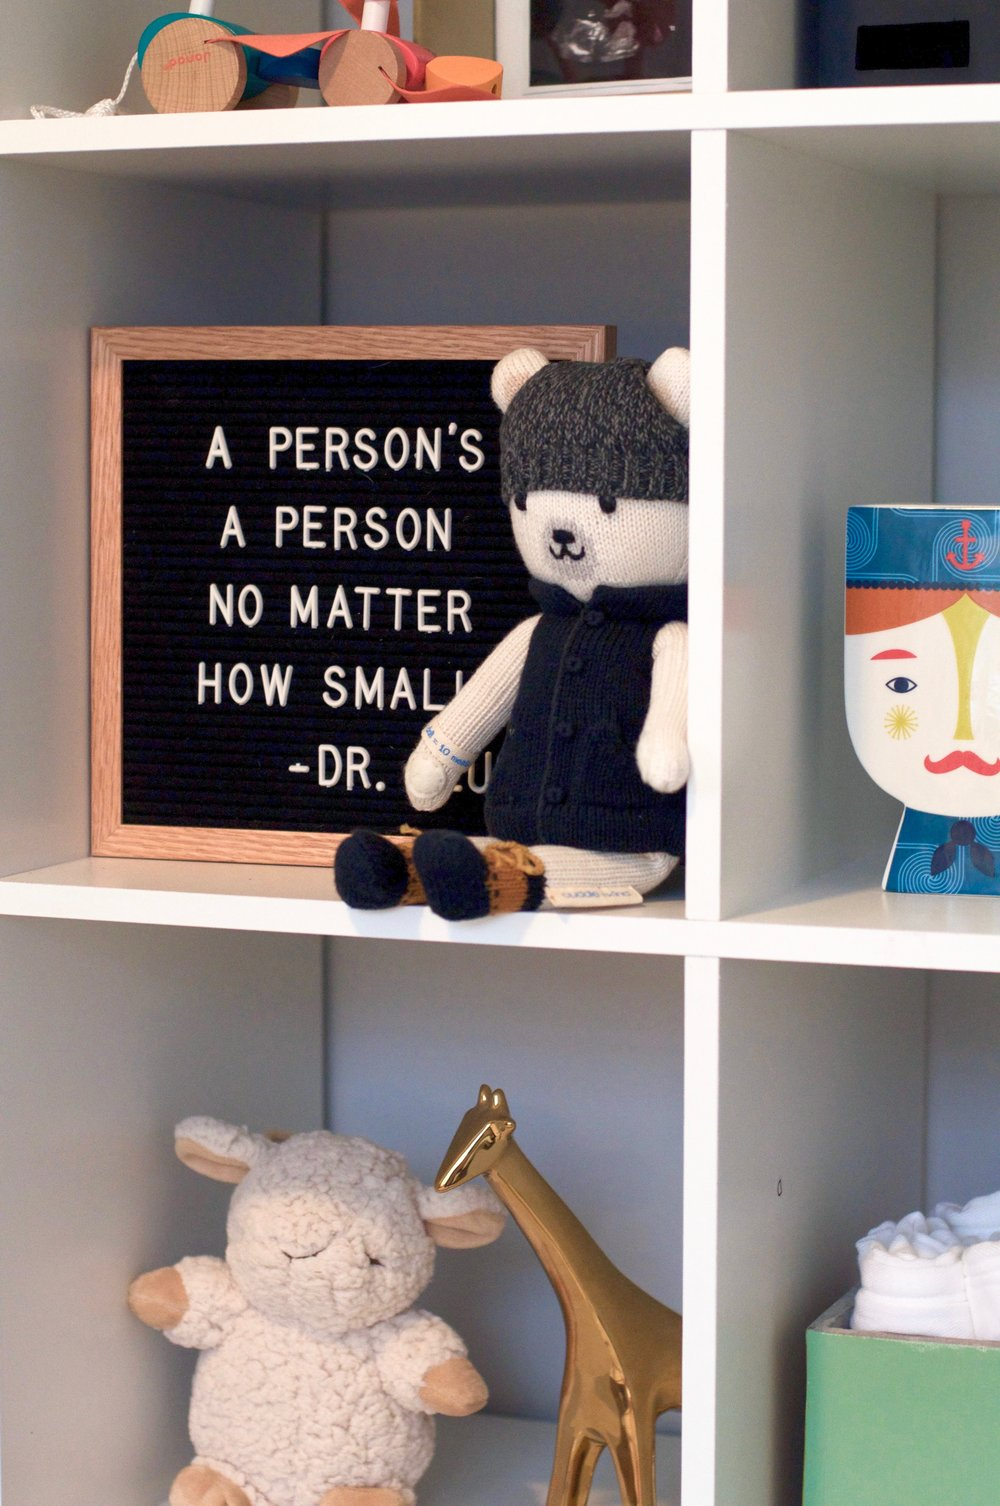 shelving  |  letterfolk board  |  polar bear  |  piggy bank  |  sleep sheep  |  giraffe  | cement bin (old  Tiny Finch  find)